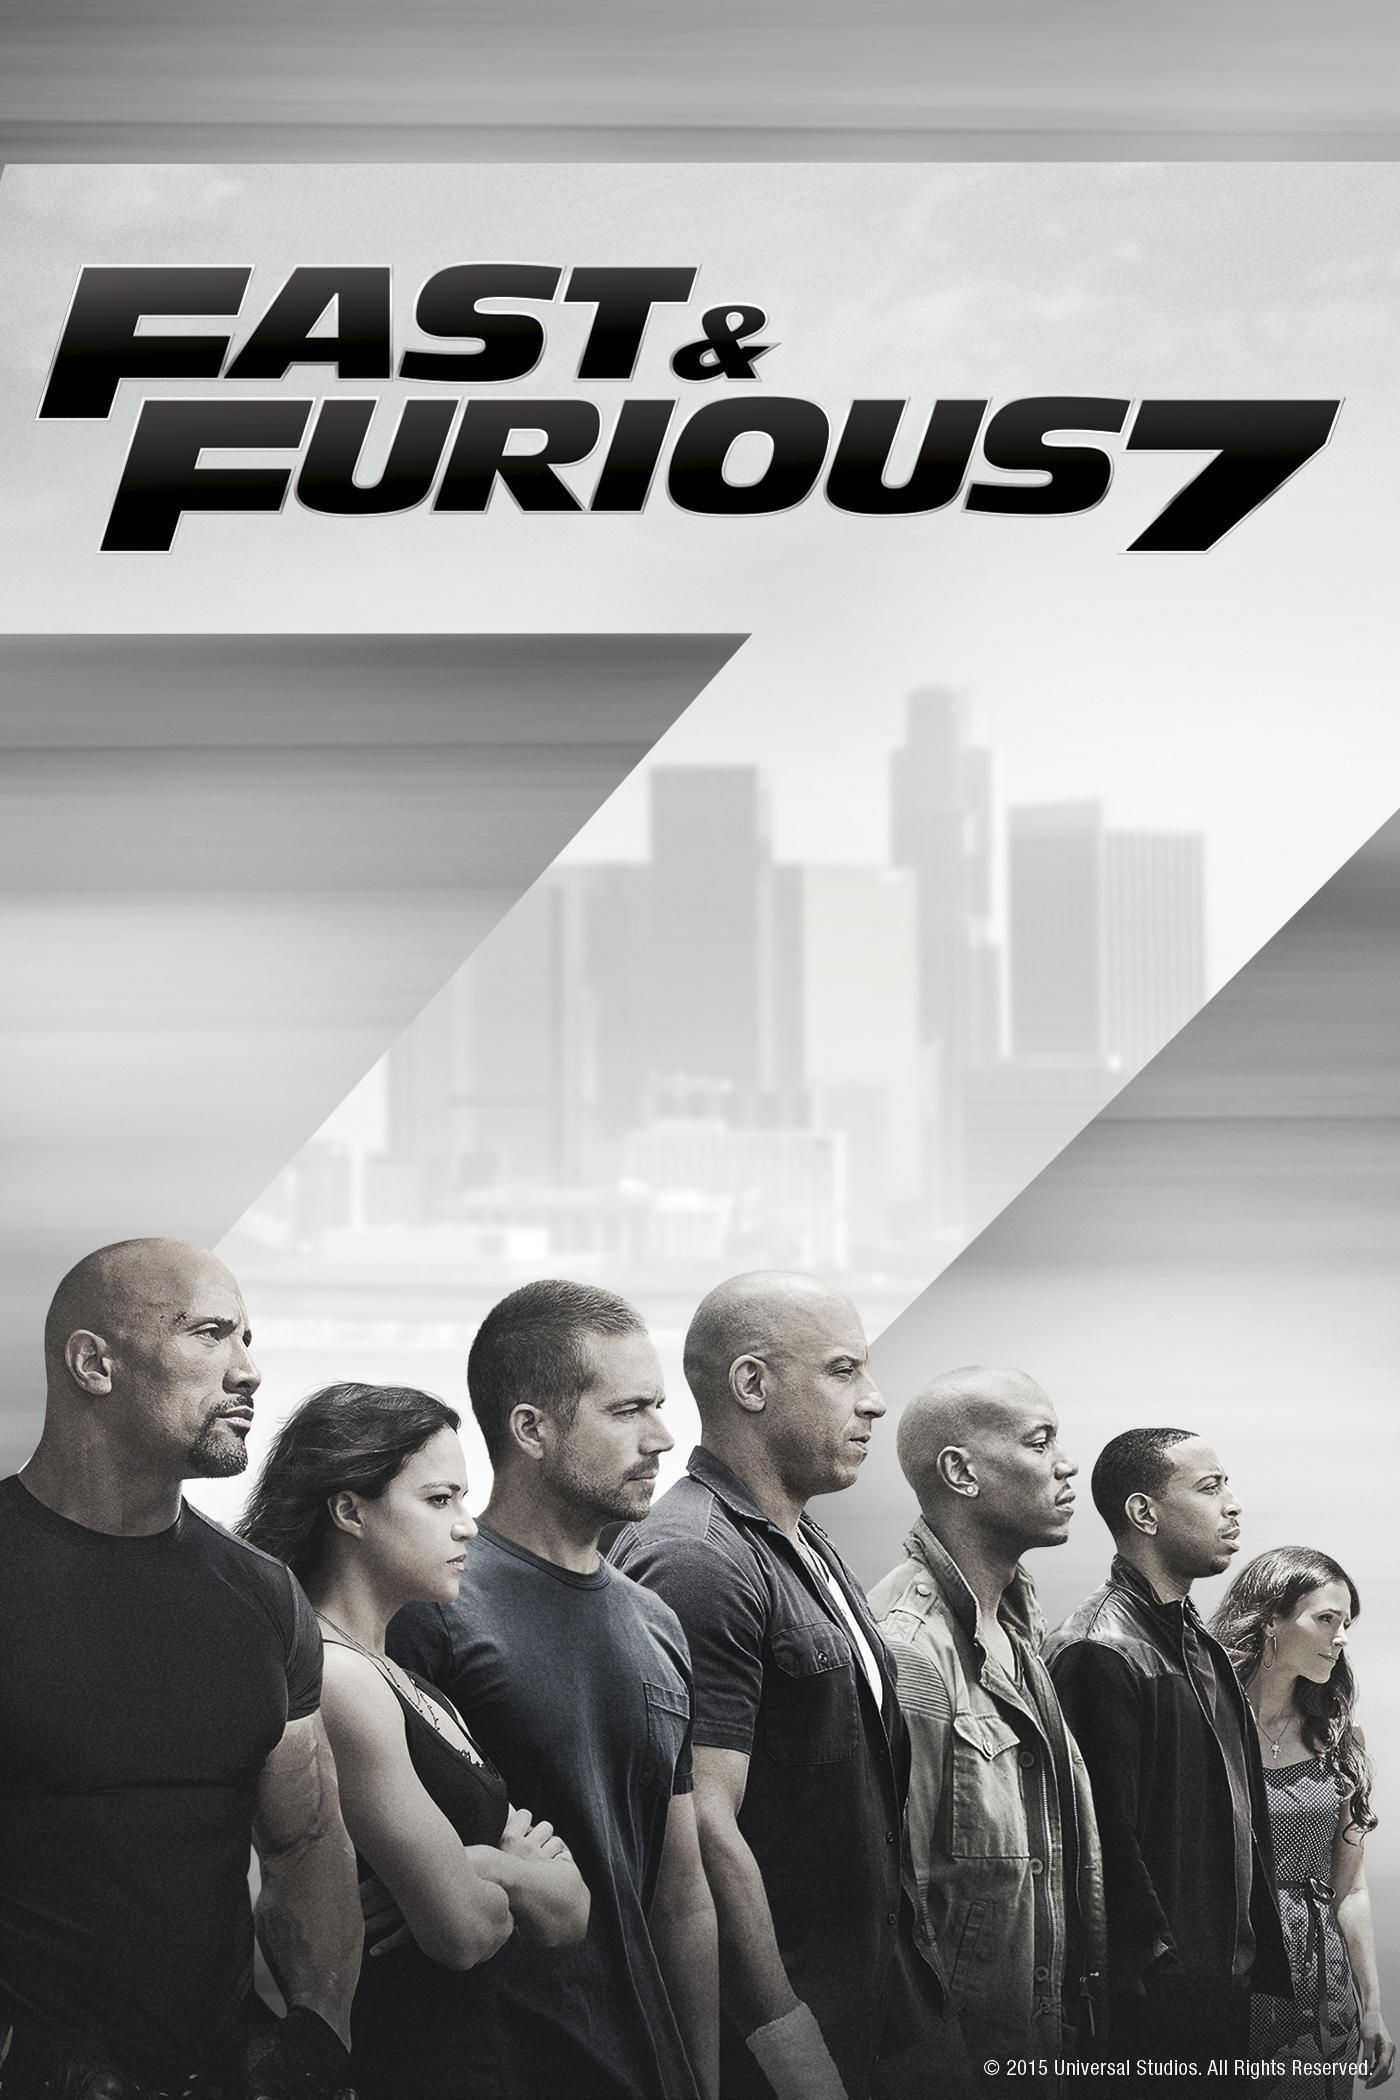 Des Films En Streaming Fast And Furious 7 Film Complet En Streaming Vf Film